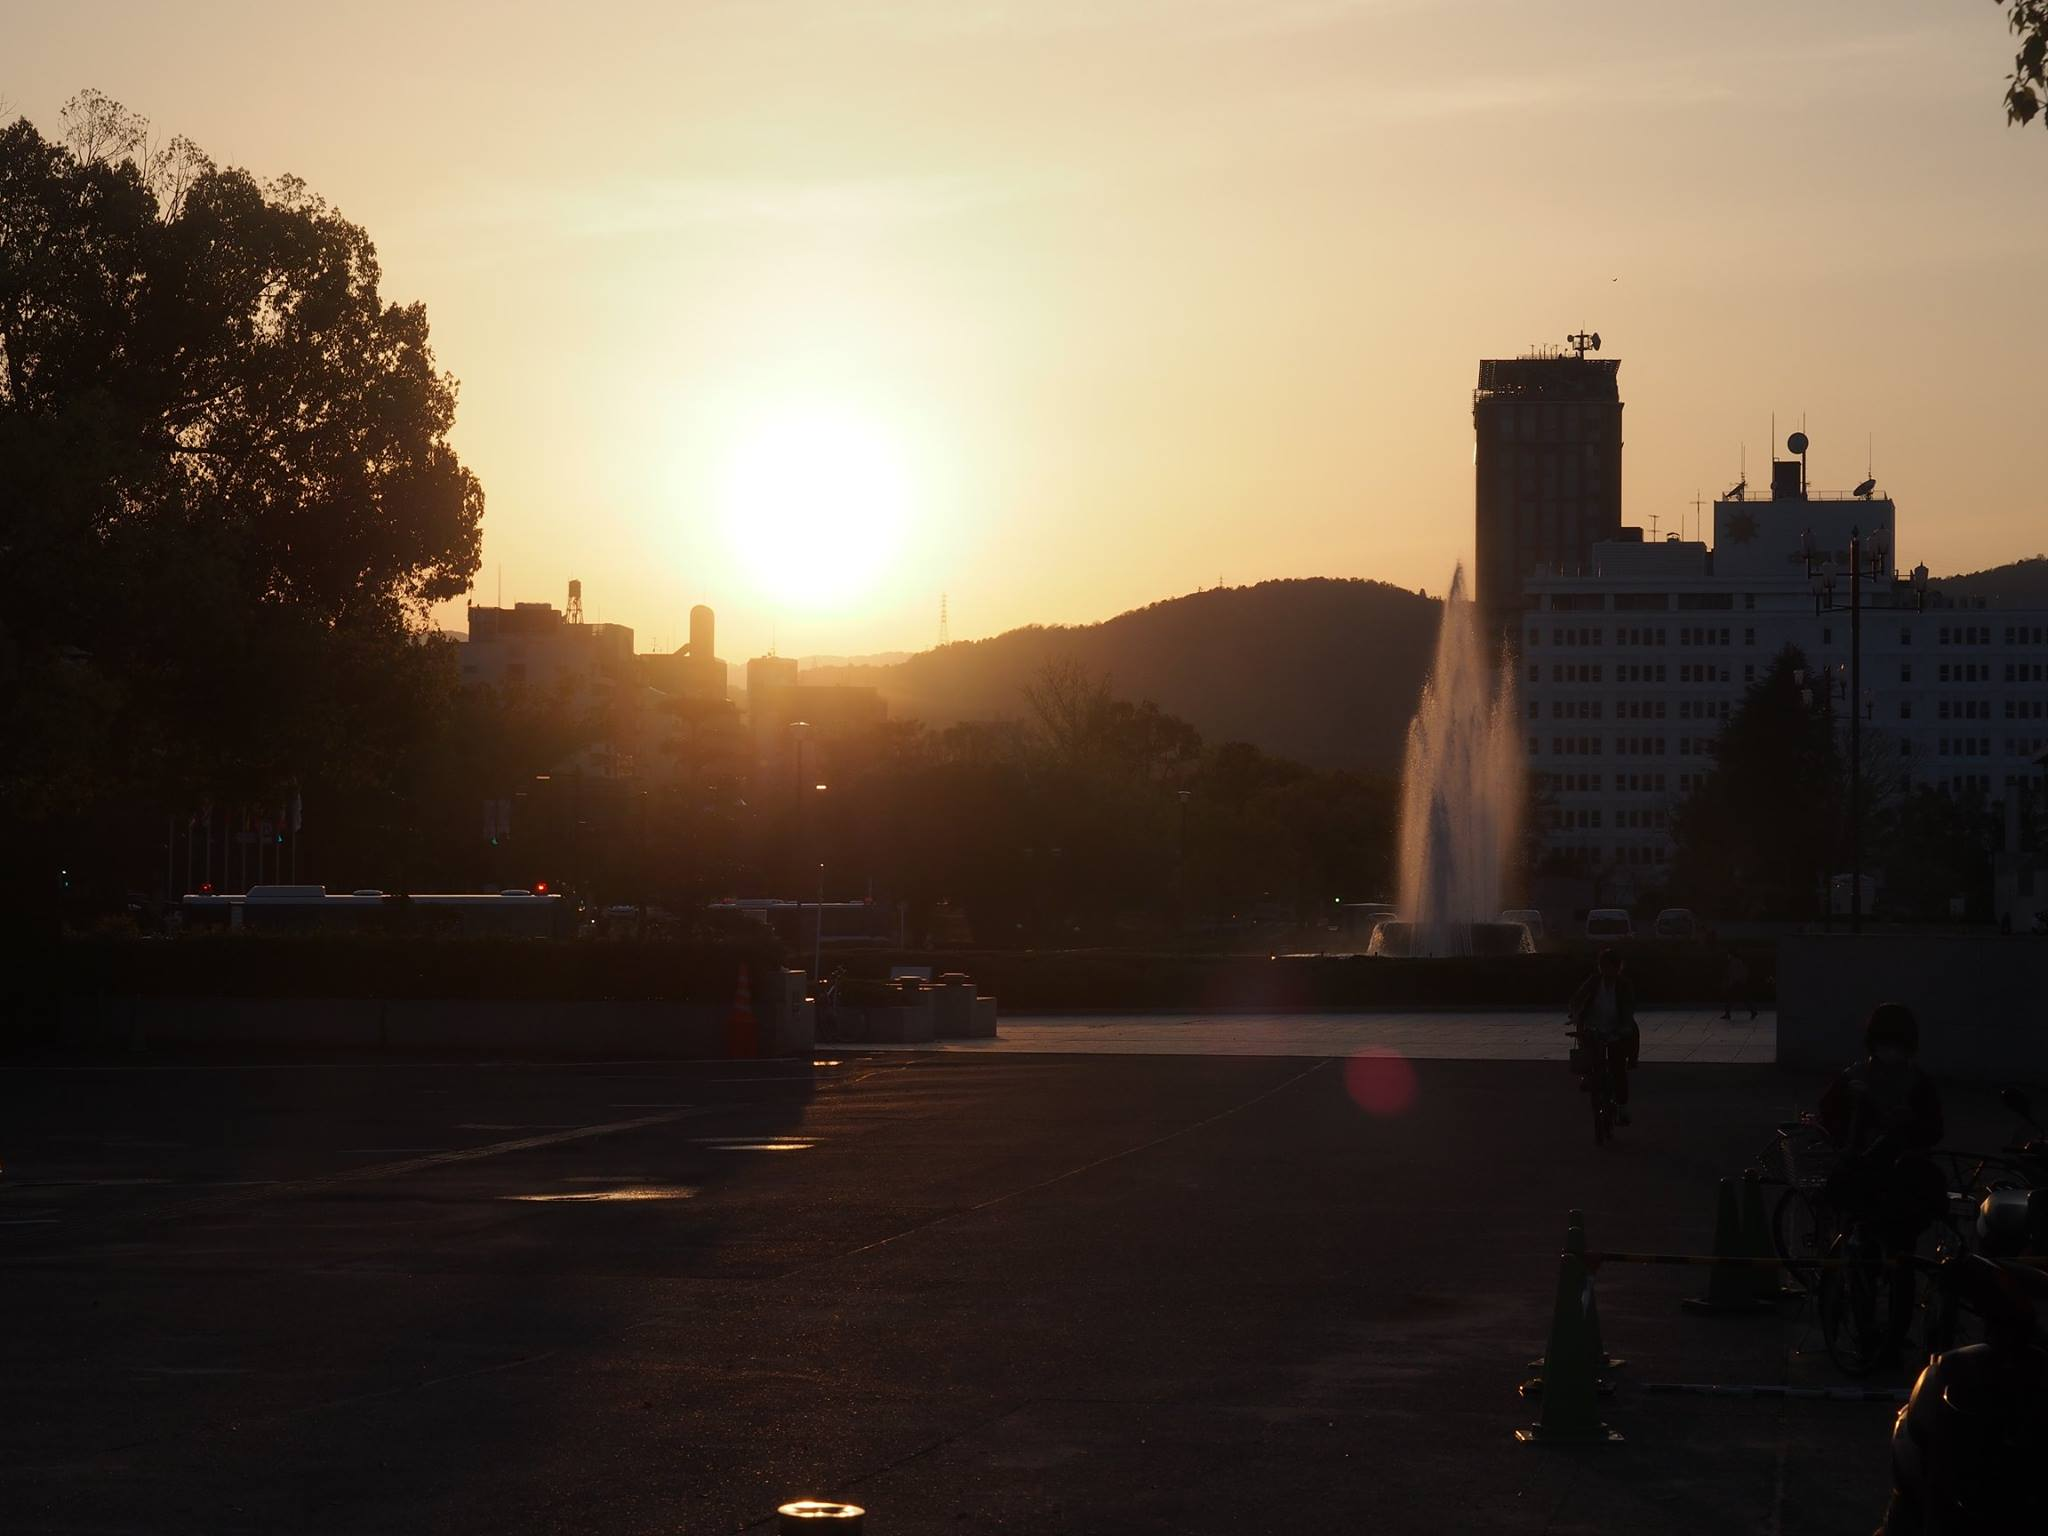 hiroshima peace memorial sunset